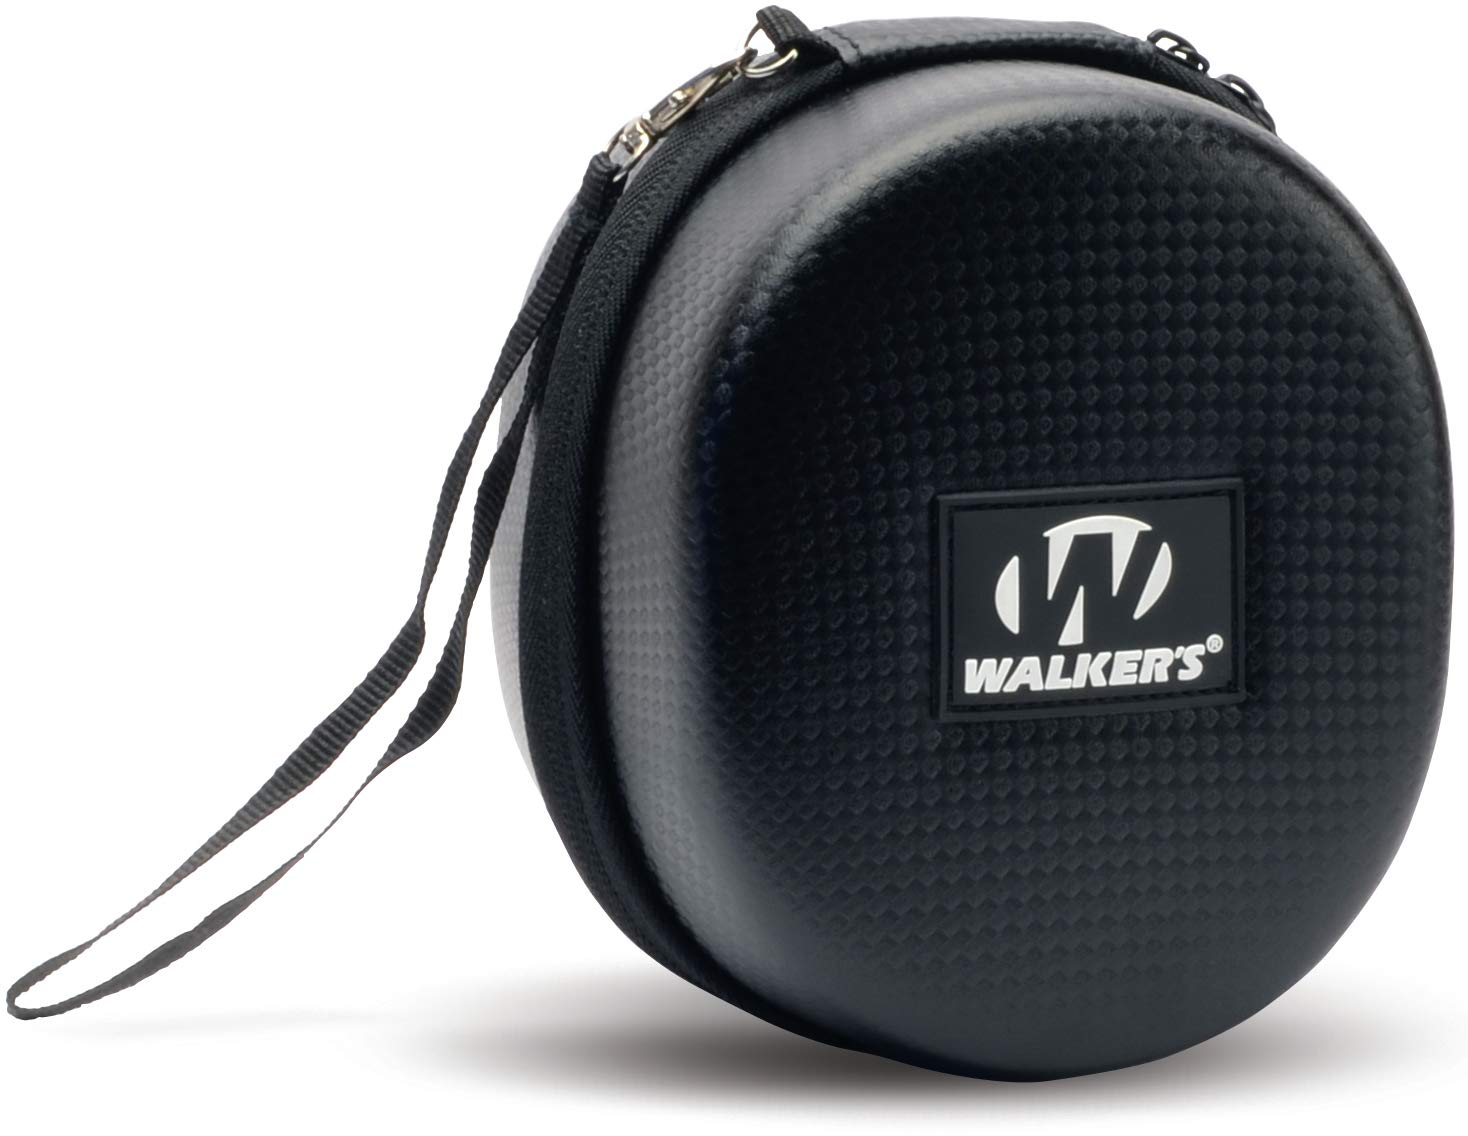 Walkers Razor Slim Electronic Shooting Hearing Protection Muff (Sound Amplification and Suppression) with Protective Case, Tan by Walkers (Image #4)